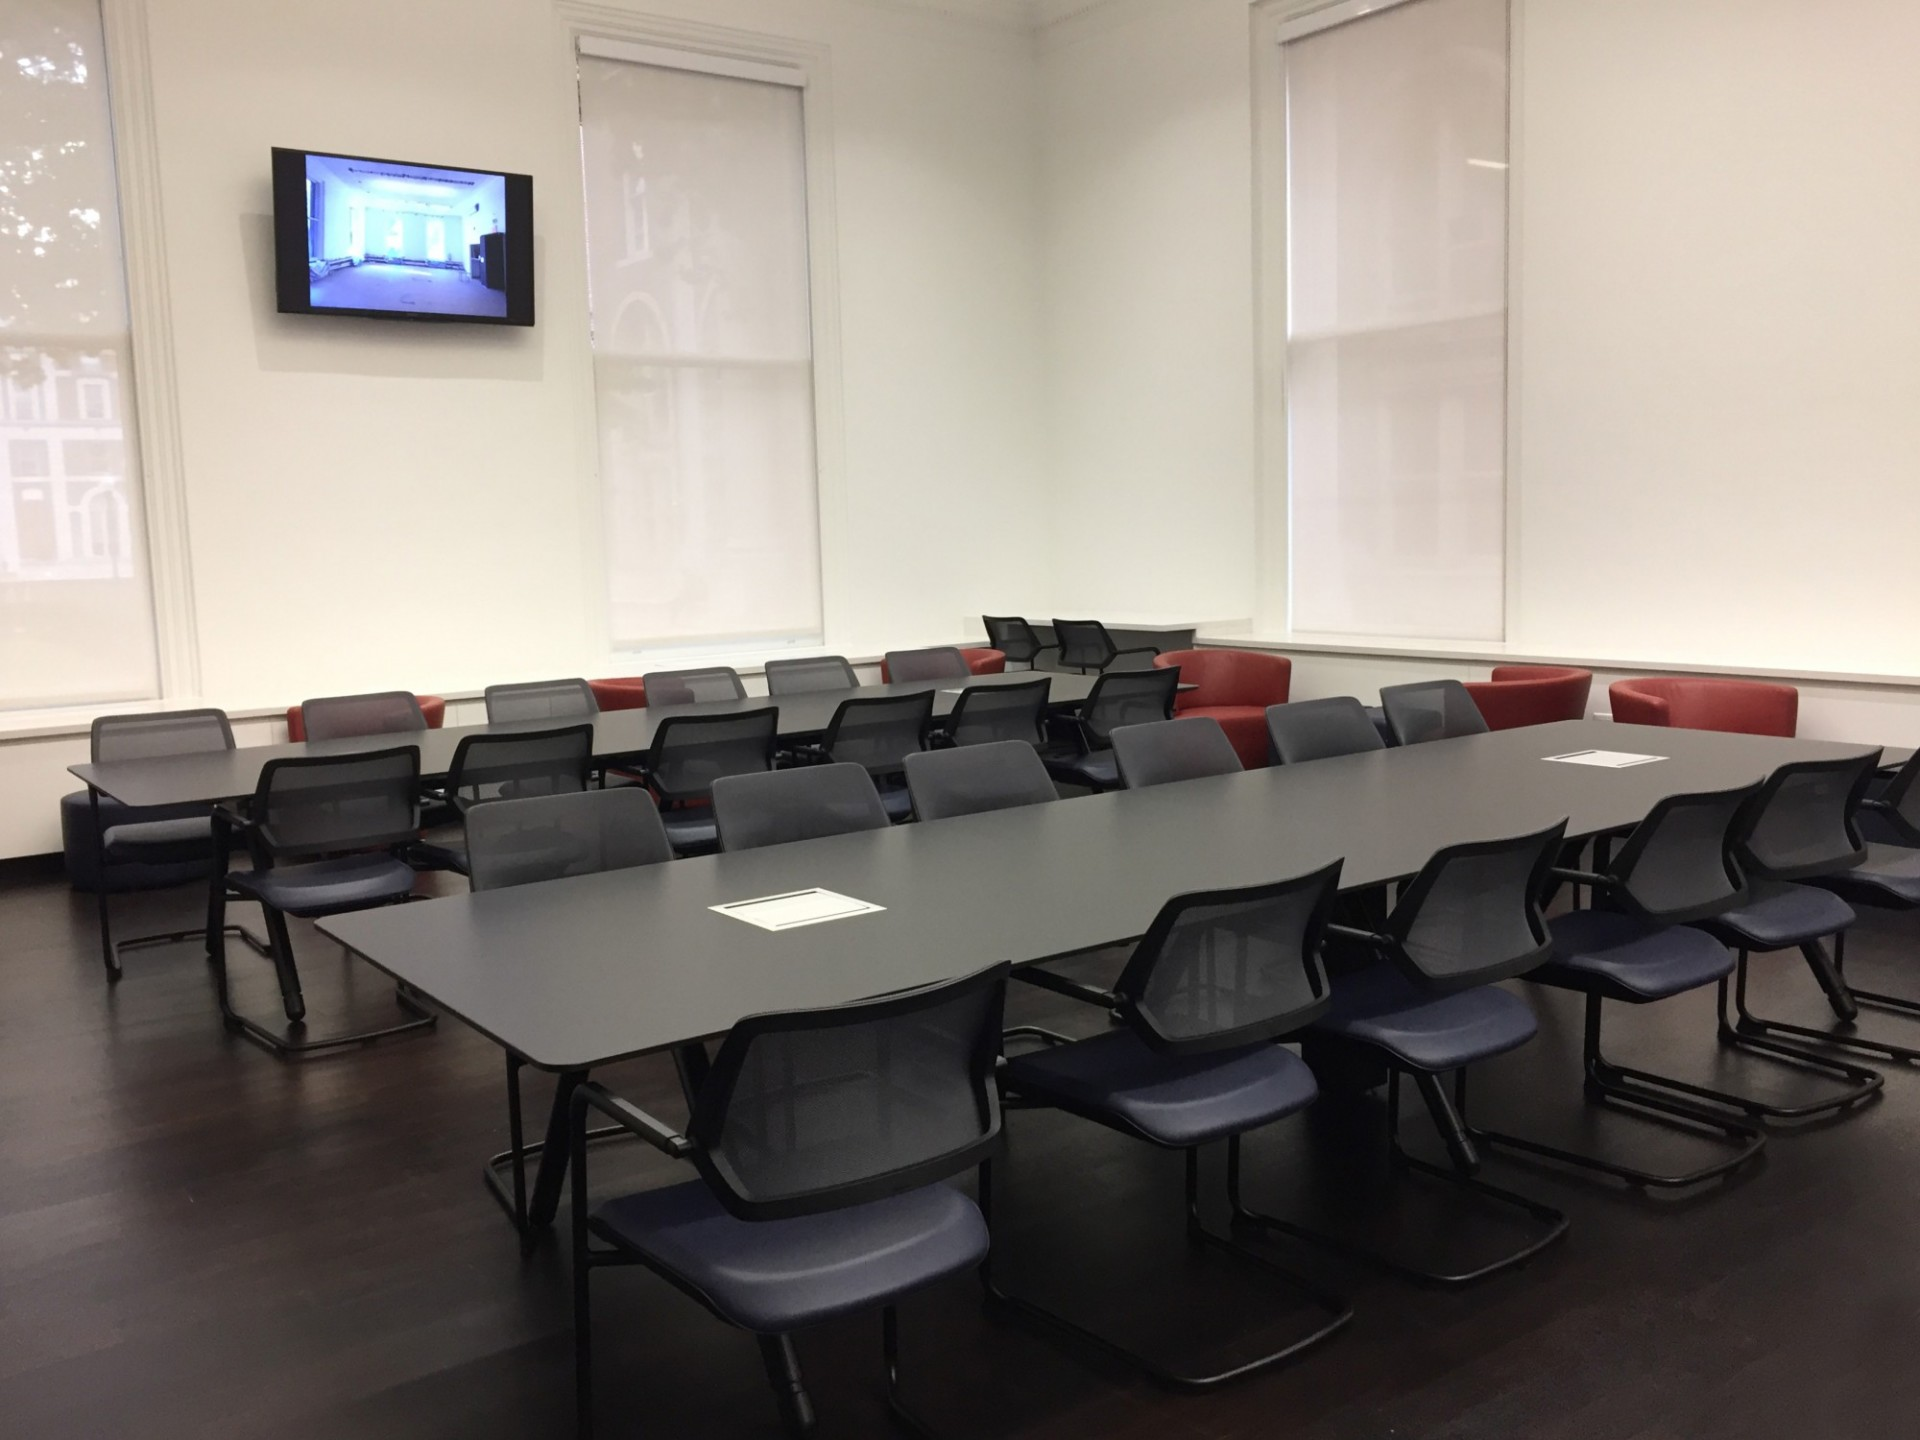 Lewisohn Hall: Renovated the General Studies Student Lounge, including new paint, millwork, and furniture.